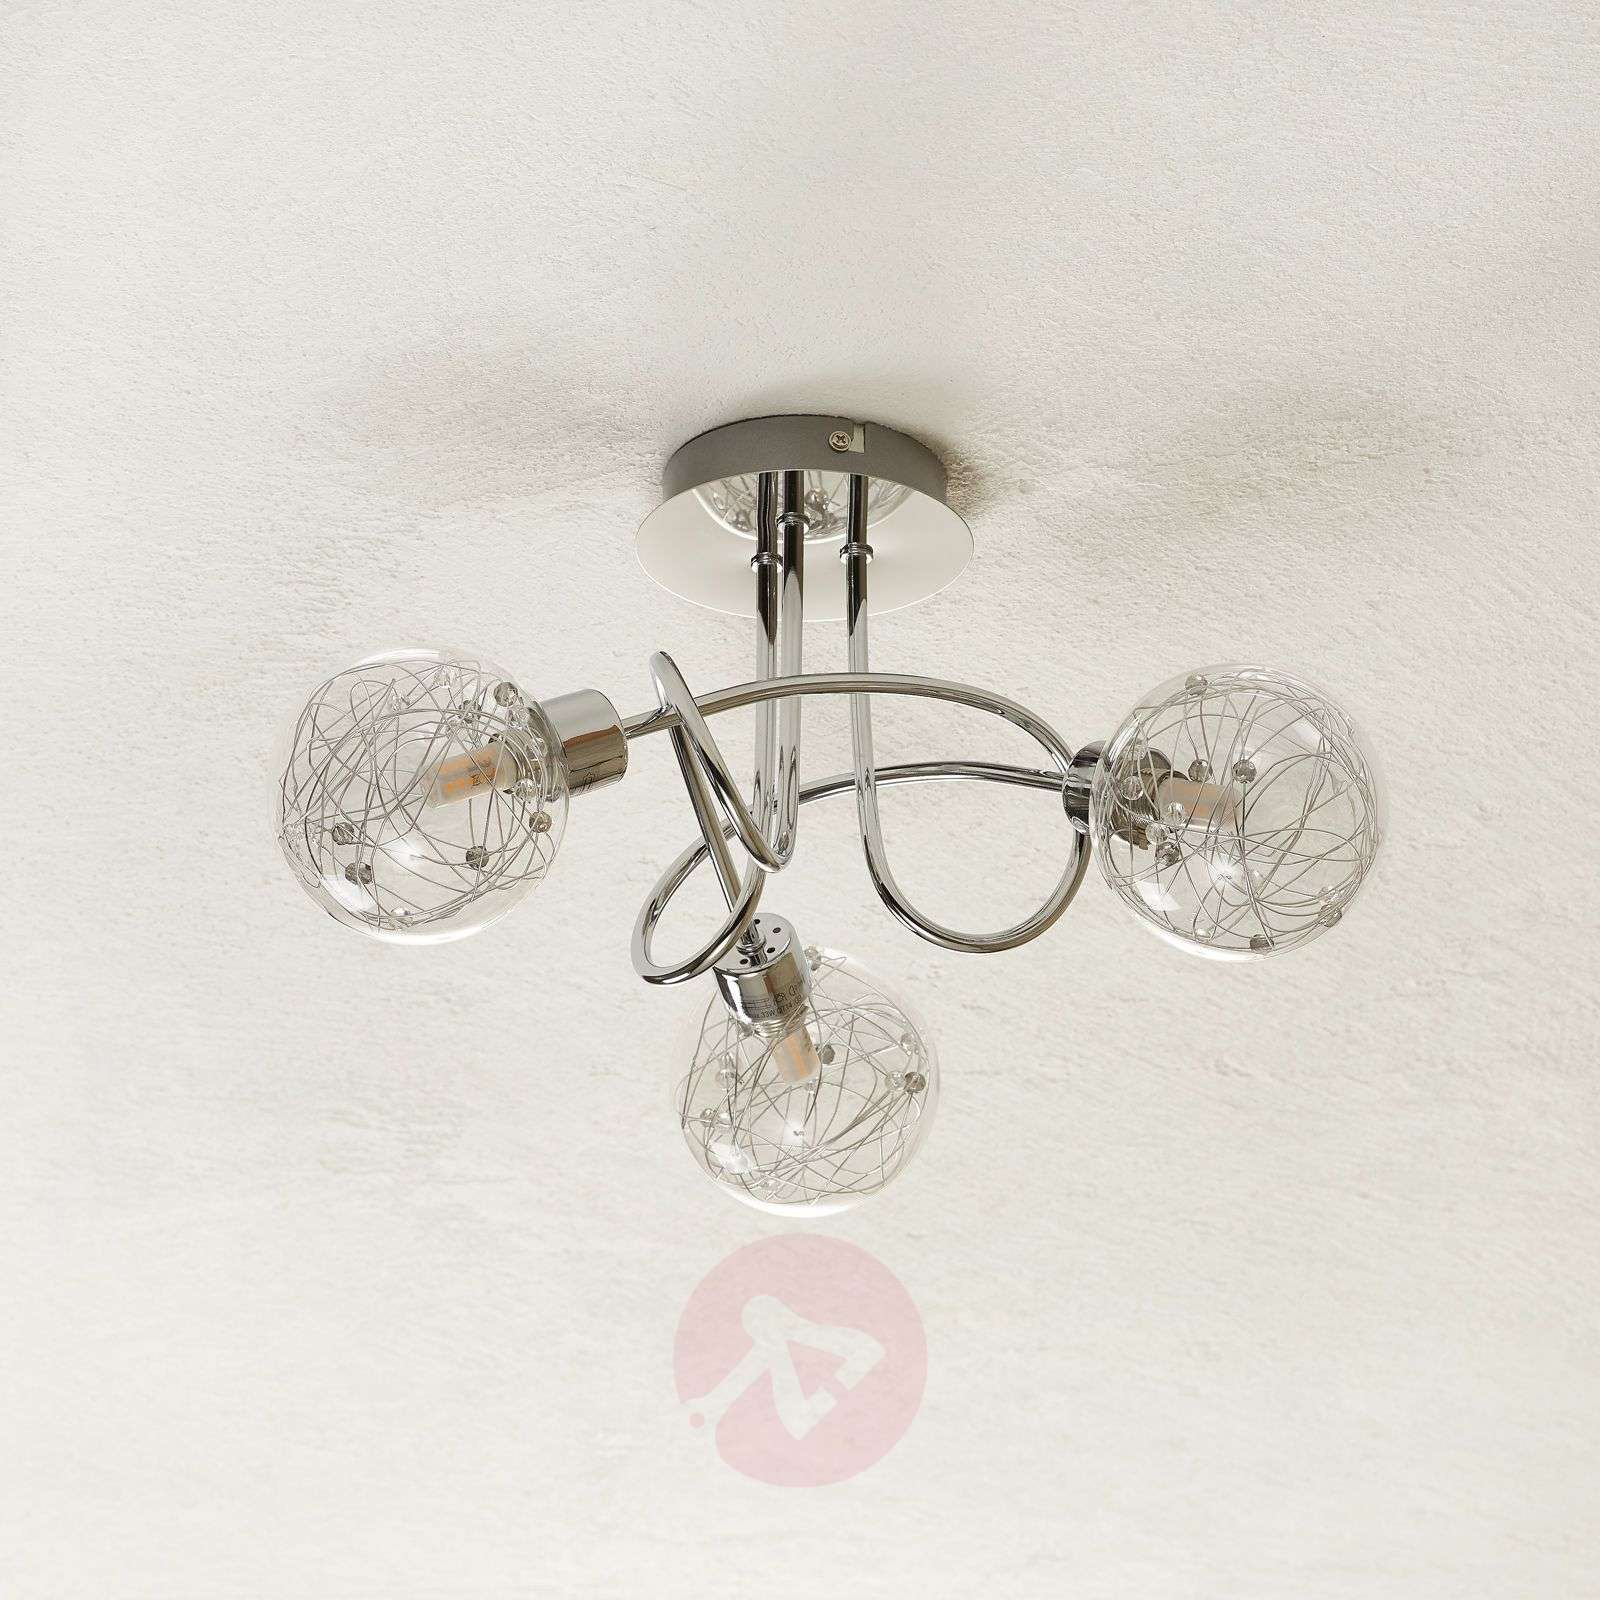 Joya 3-bulb ceiling light with glass lampshades-1509046-01